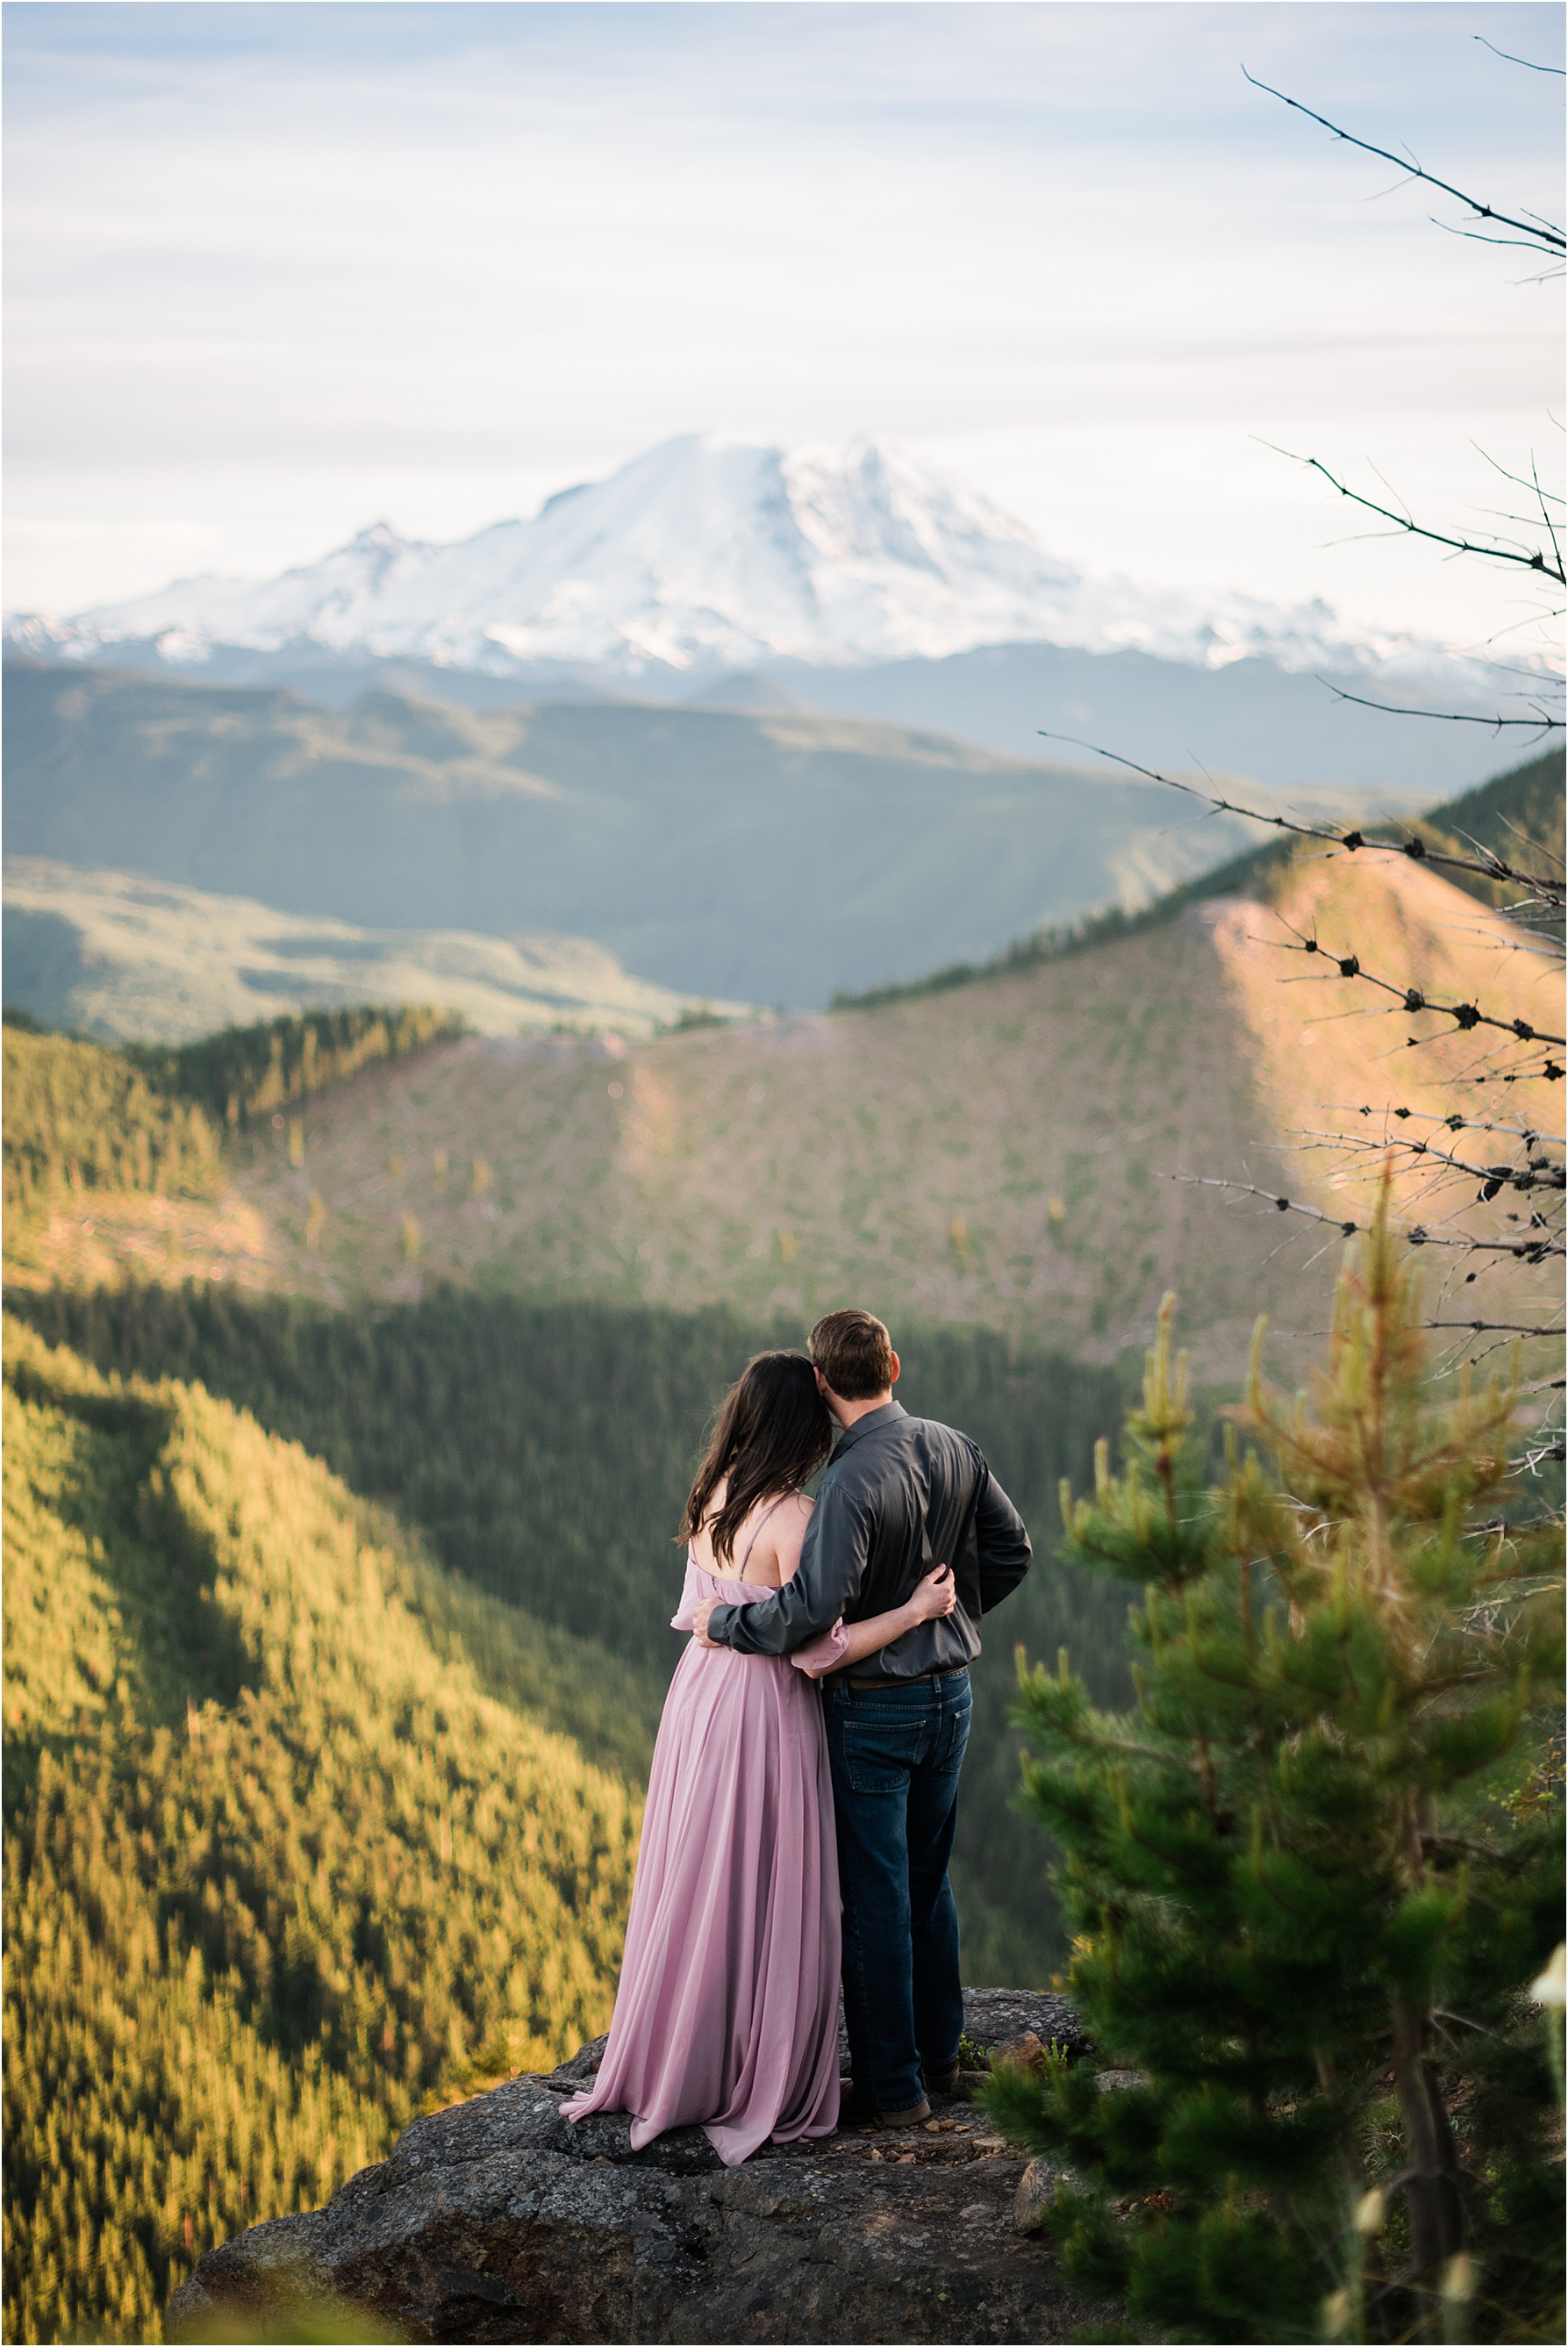 Adventure engagement session at a fire lookout with views of Mt Rainier. Image by Forthright Photo, Seattle Wedding Photographers.